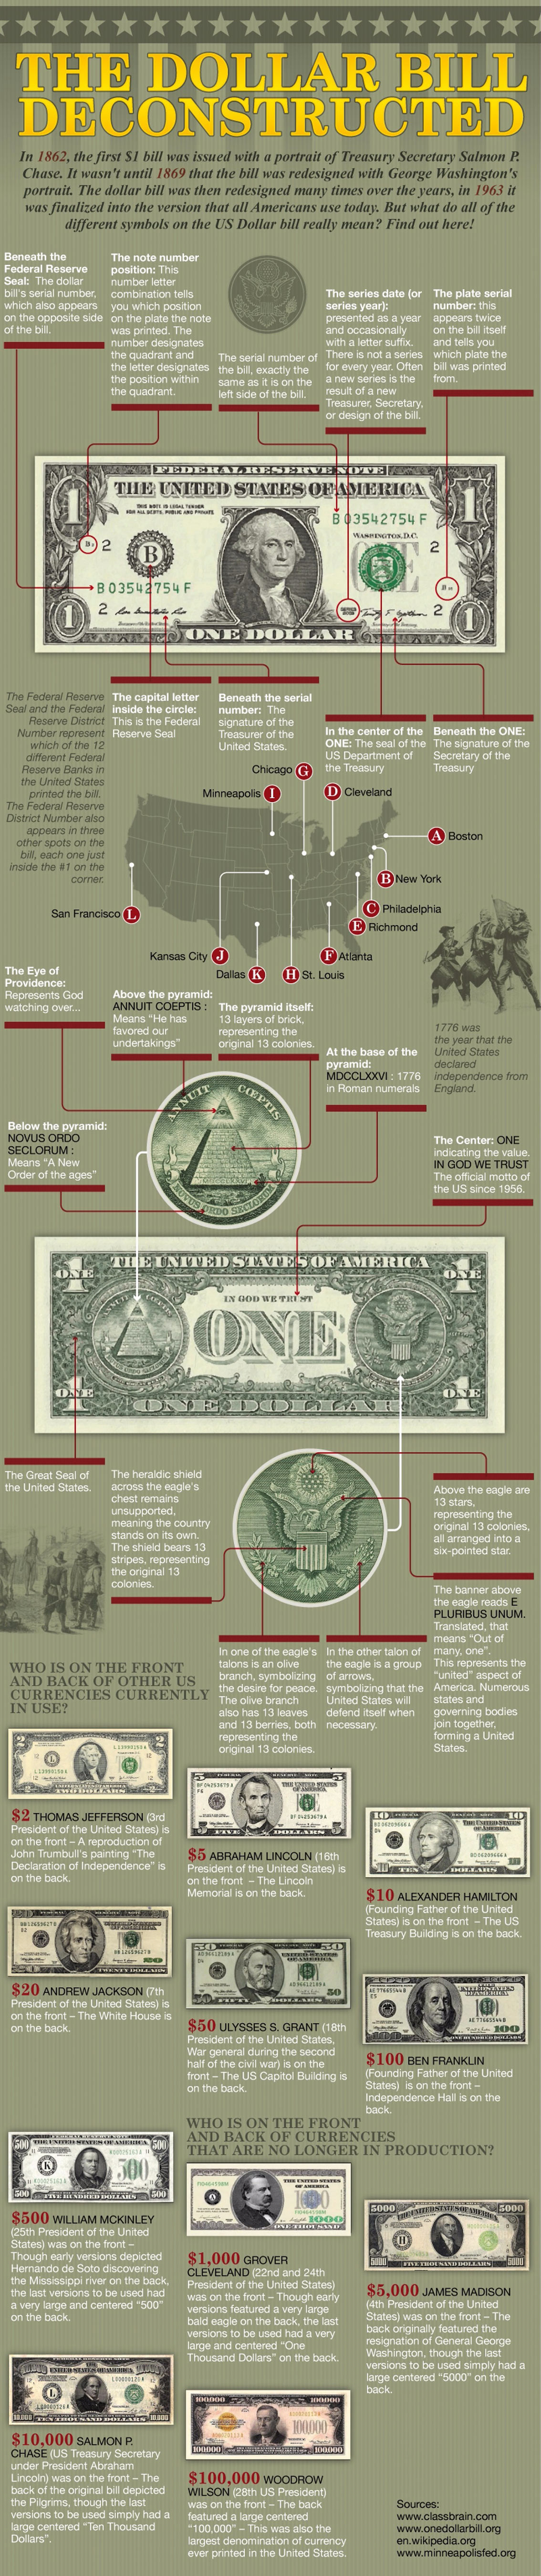 Dollar Bill Deconstructed Infographic